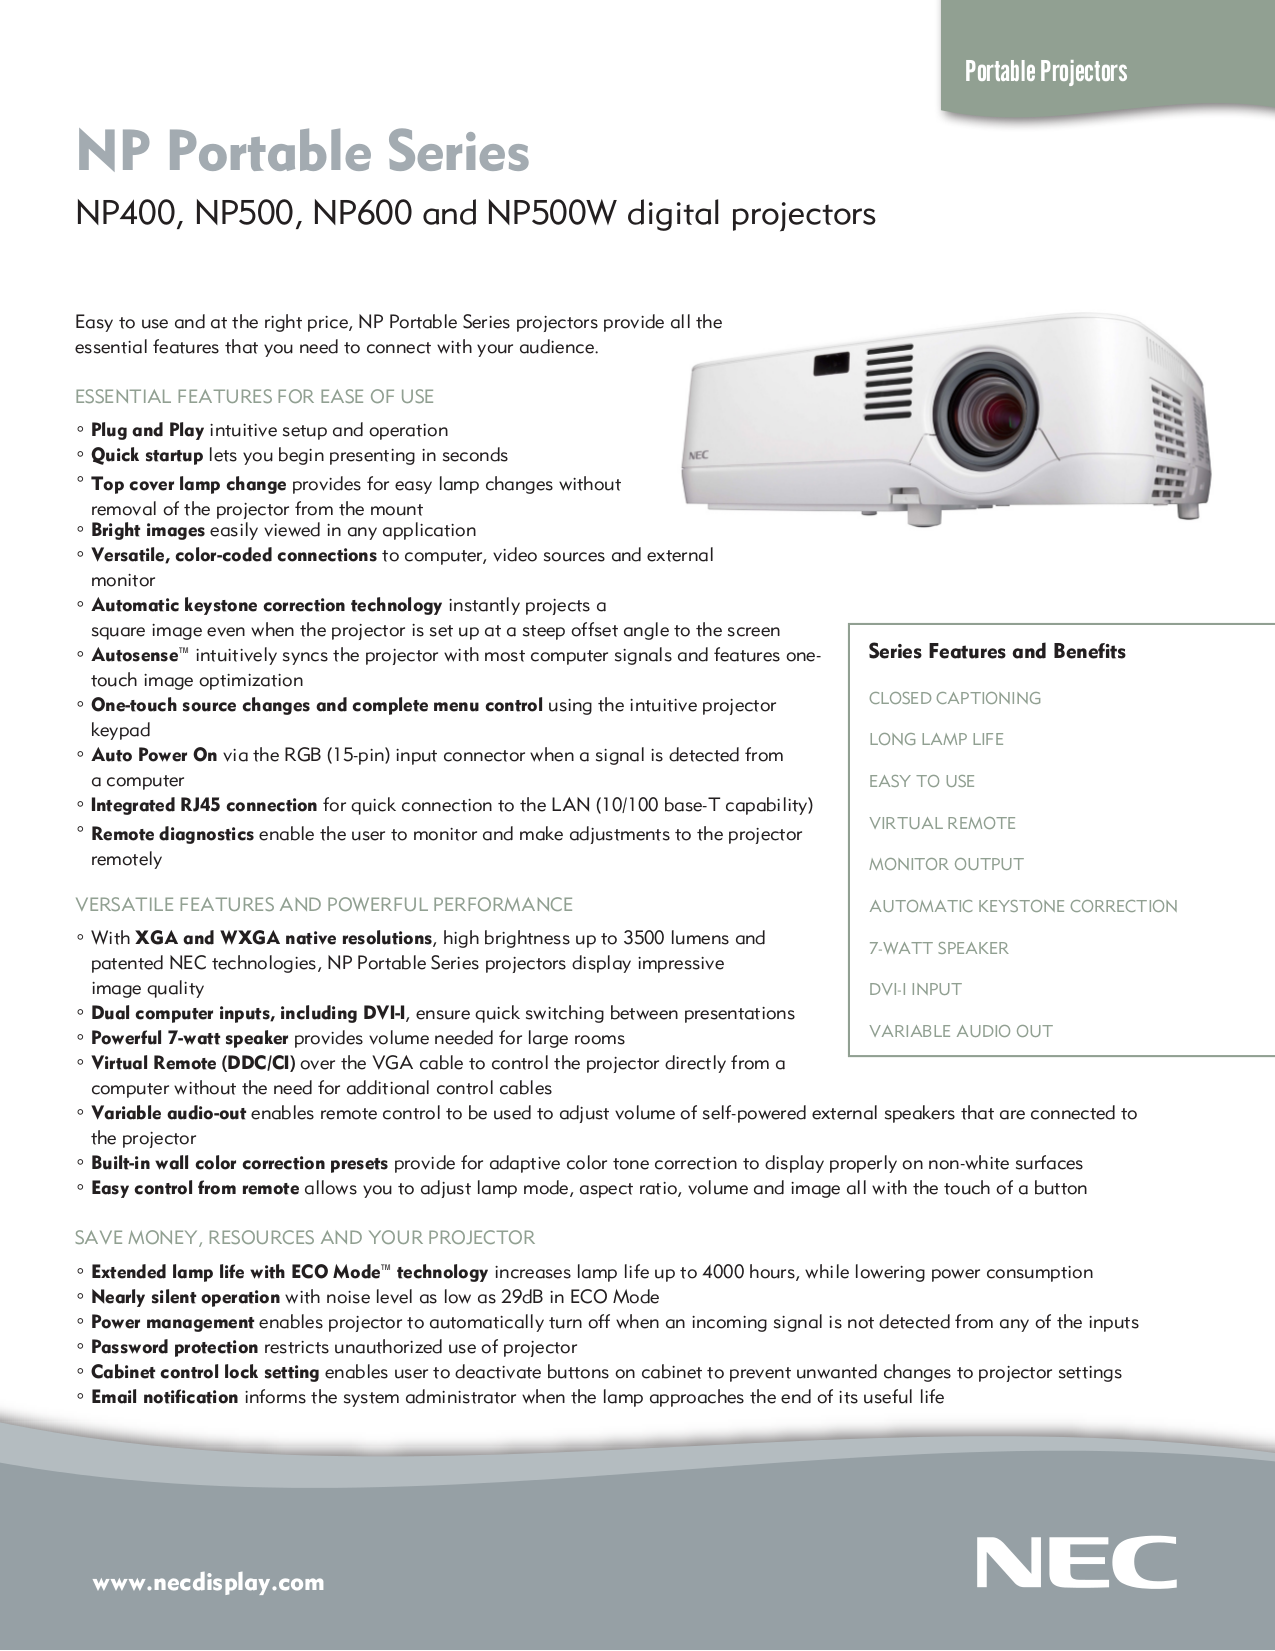 Nec np400 manual pdf for nec projector np400 manual fandeluxe Gallery